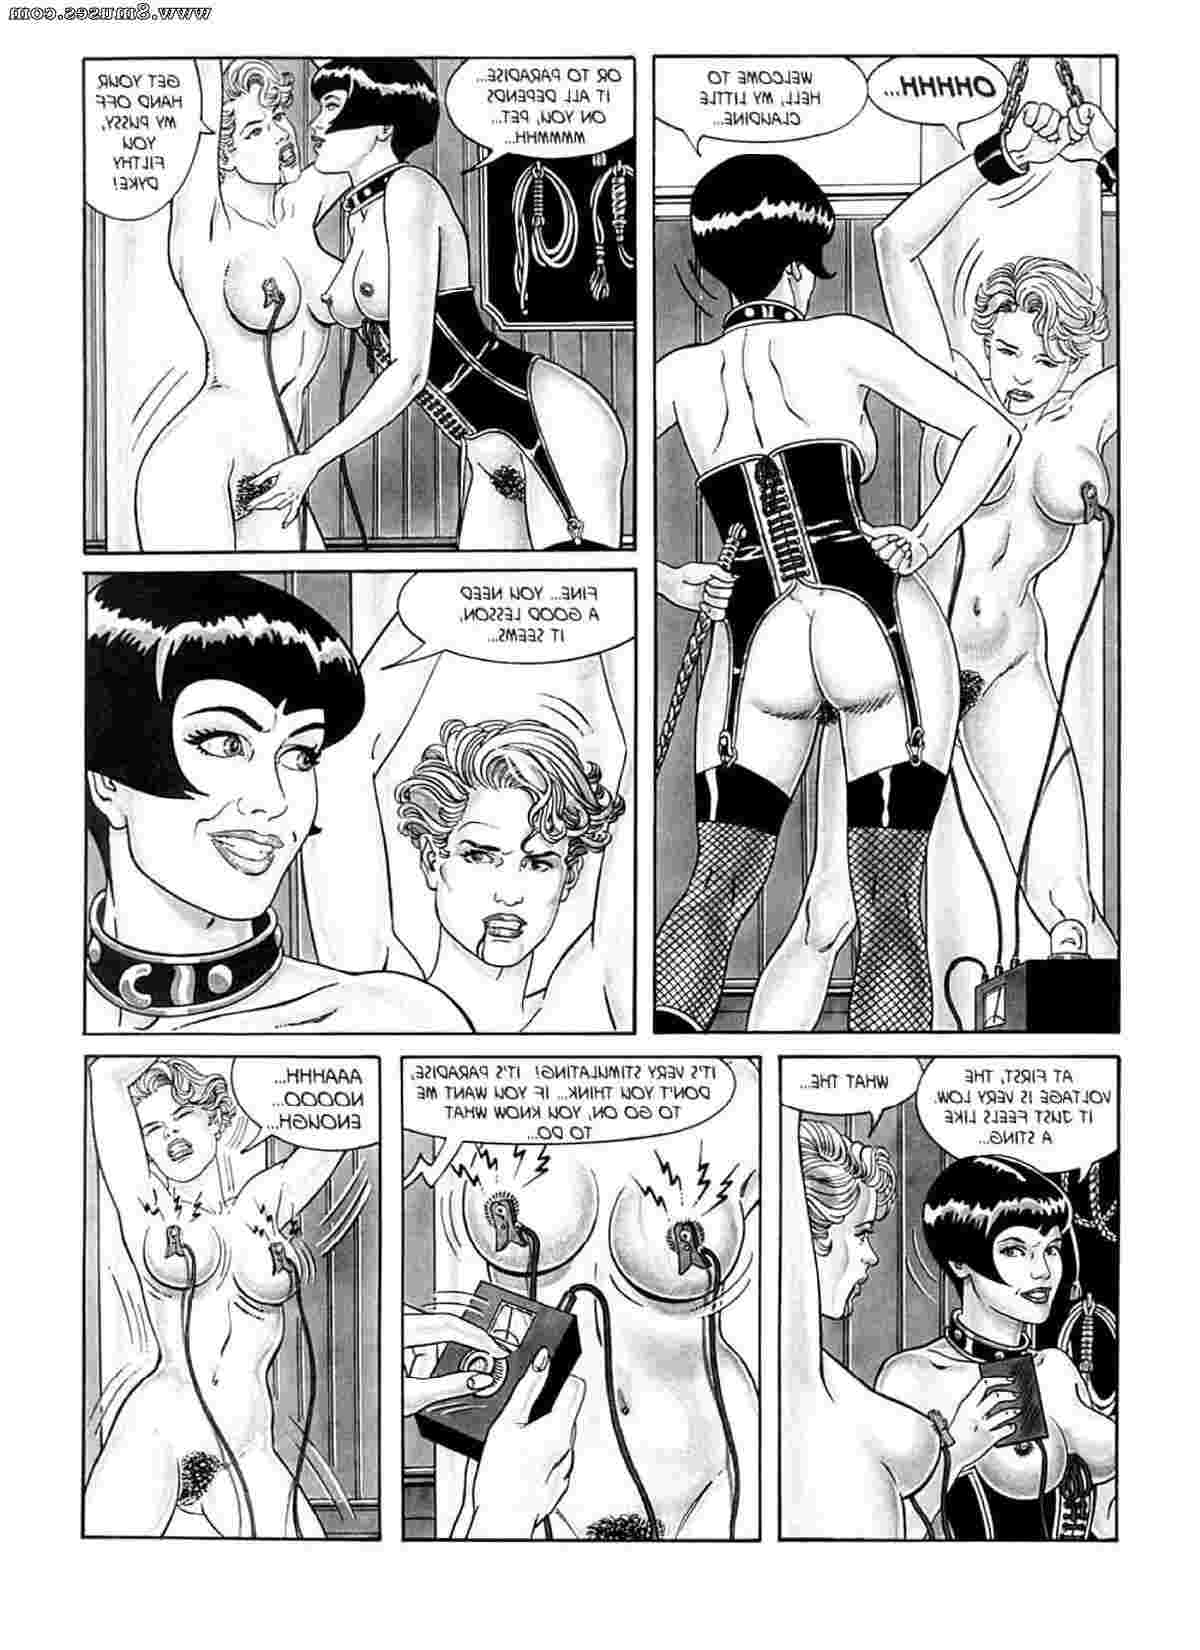 Stramaglia-Morale-Comics/Education-Anglaise Education_Anglaise__8muses_-_Sex_and_Porn_Comics_38.jpg